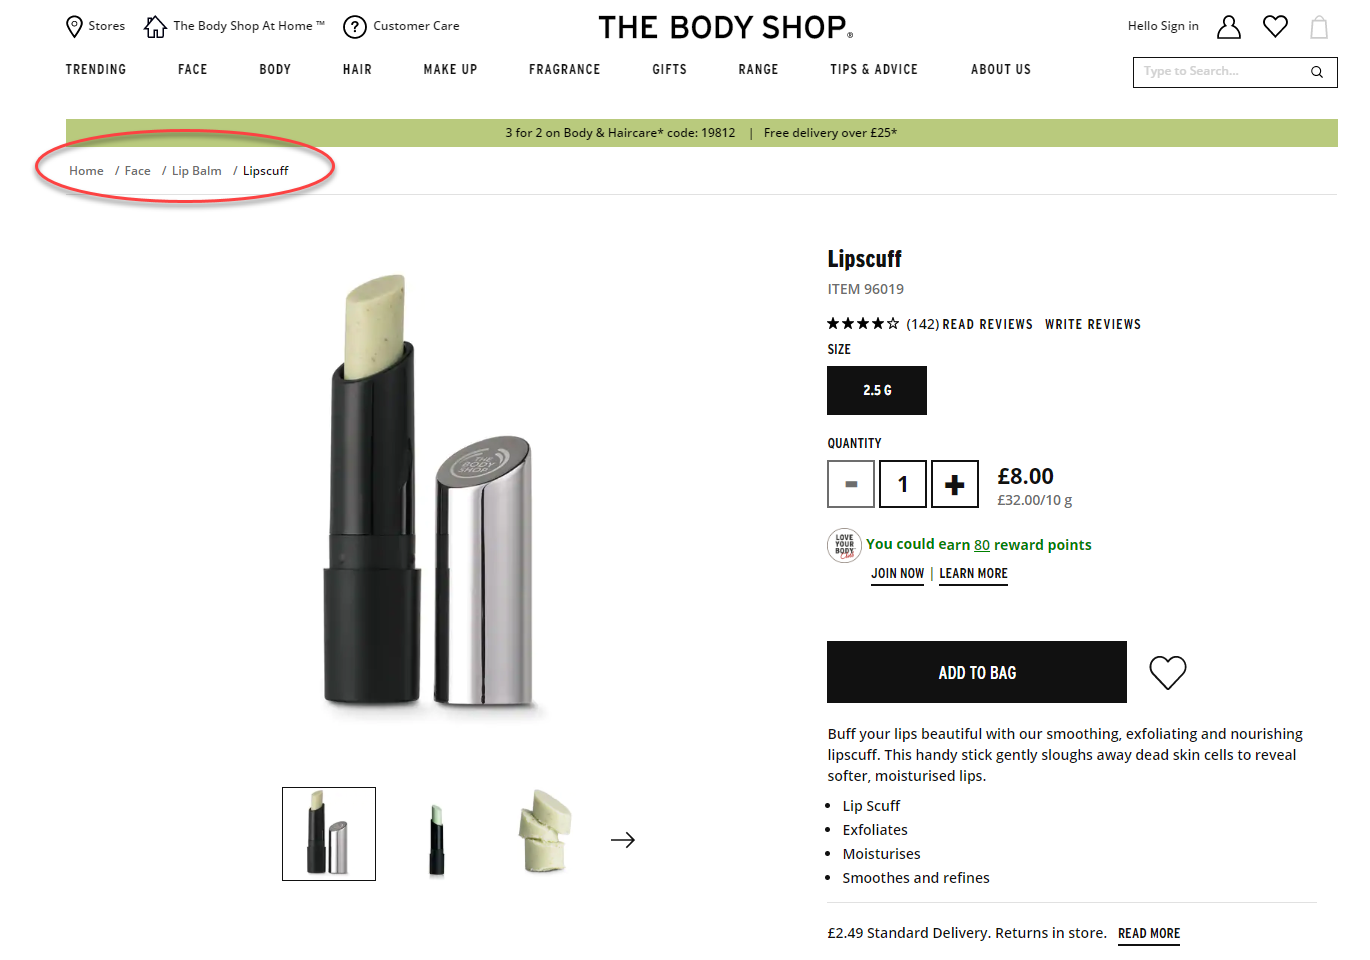 Example of clearly displayed breadcrumb link on The Body Shop website